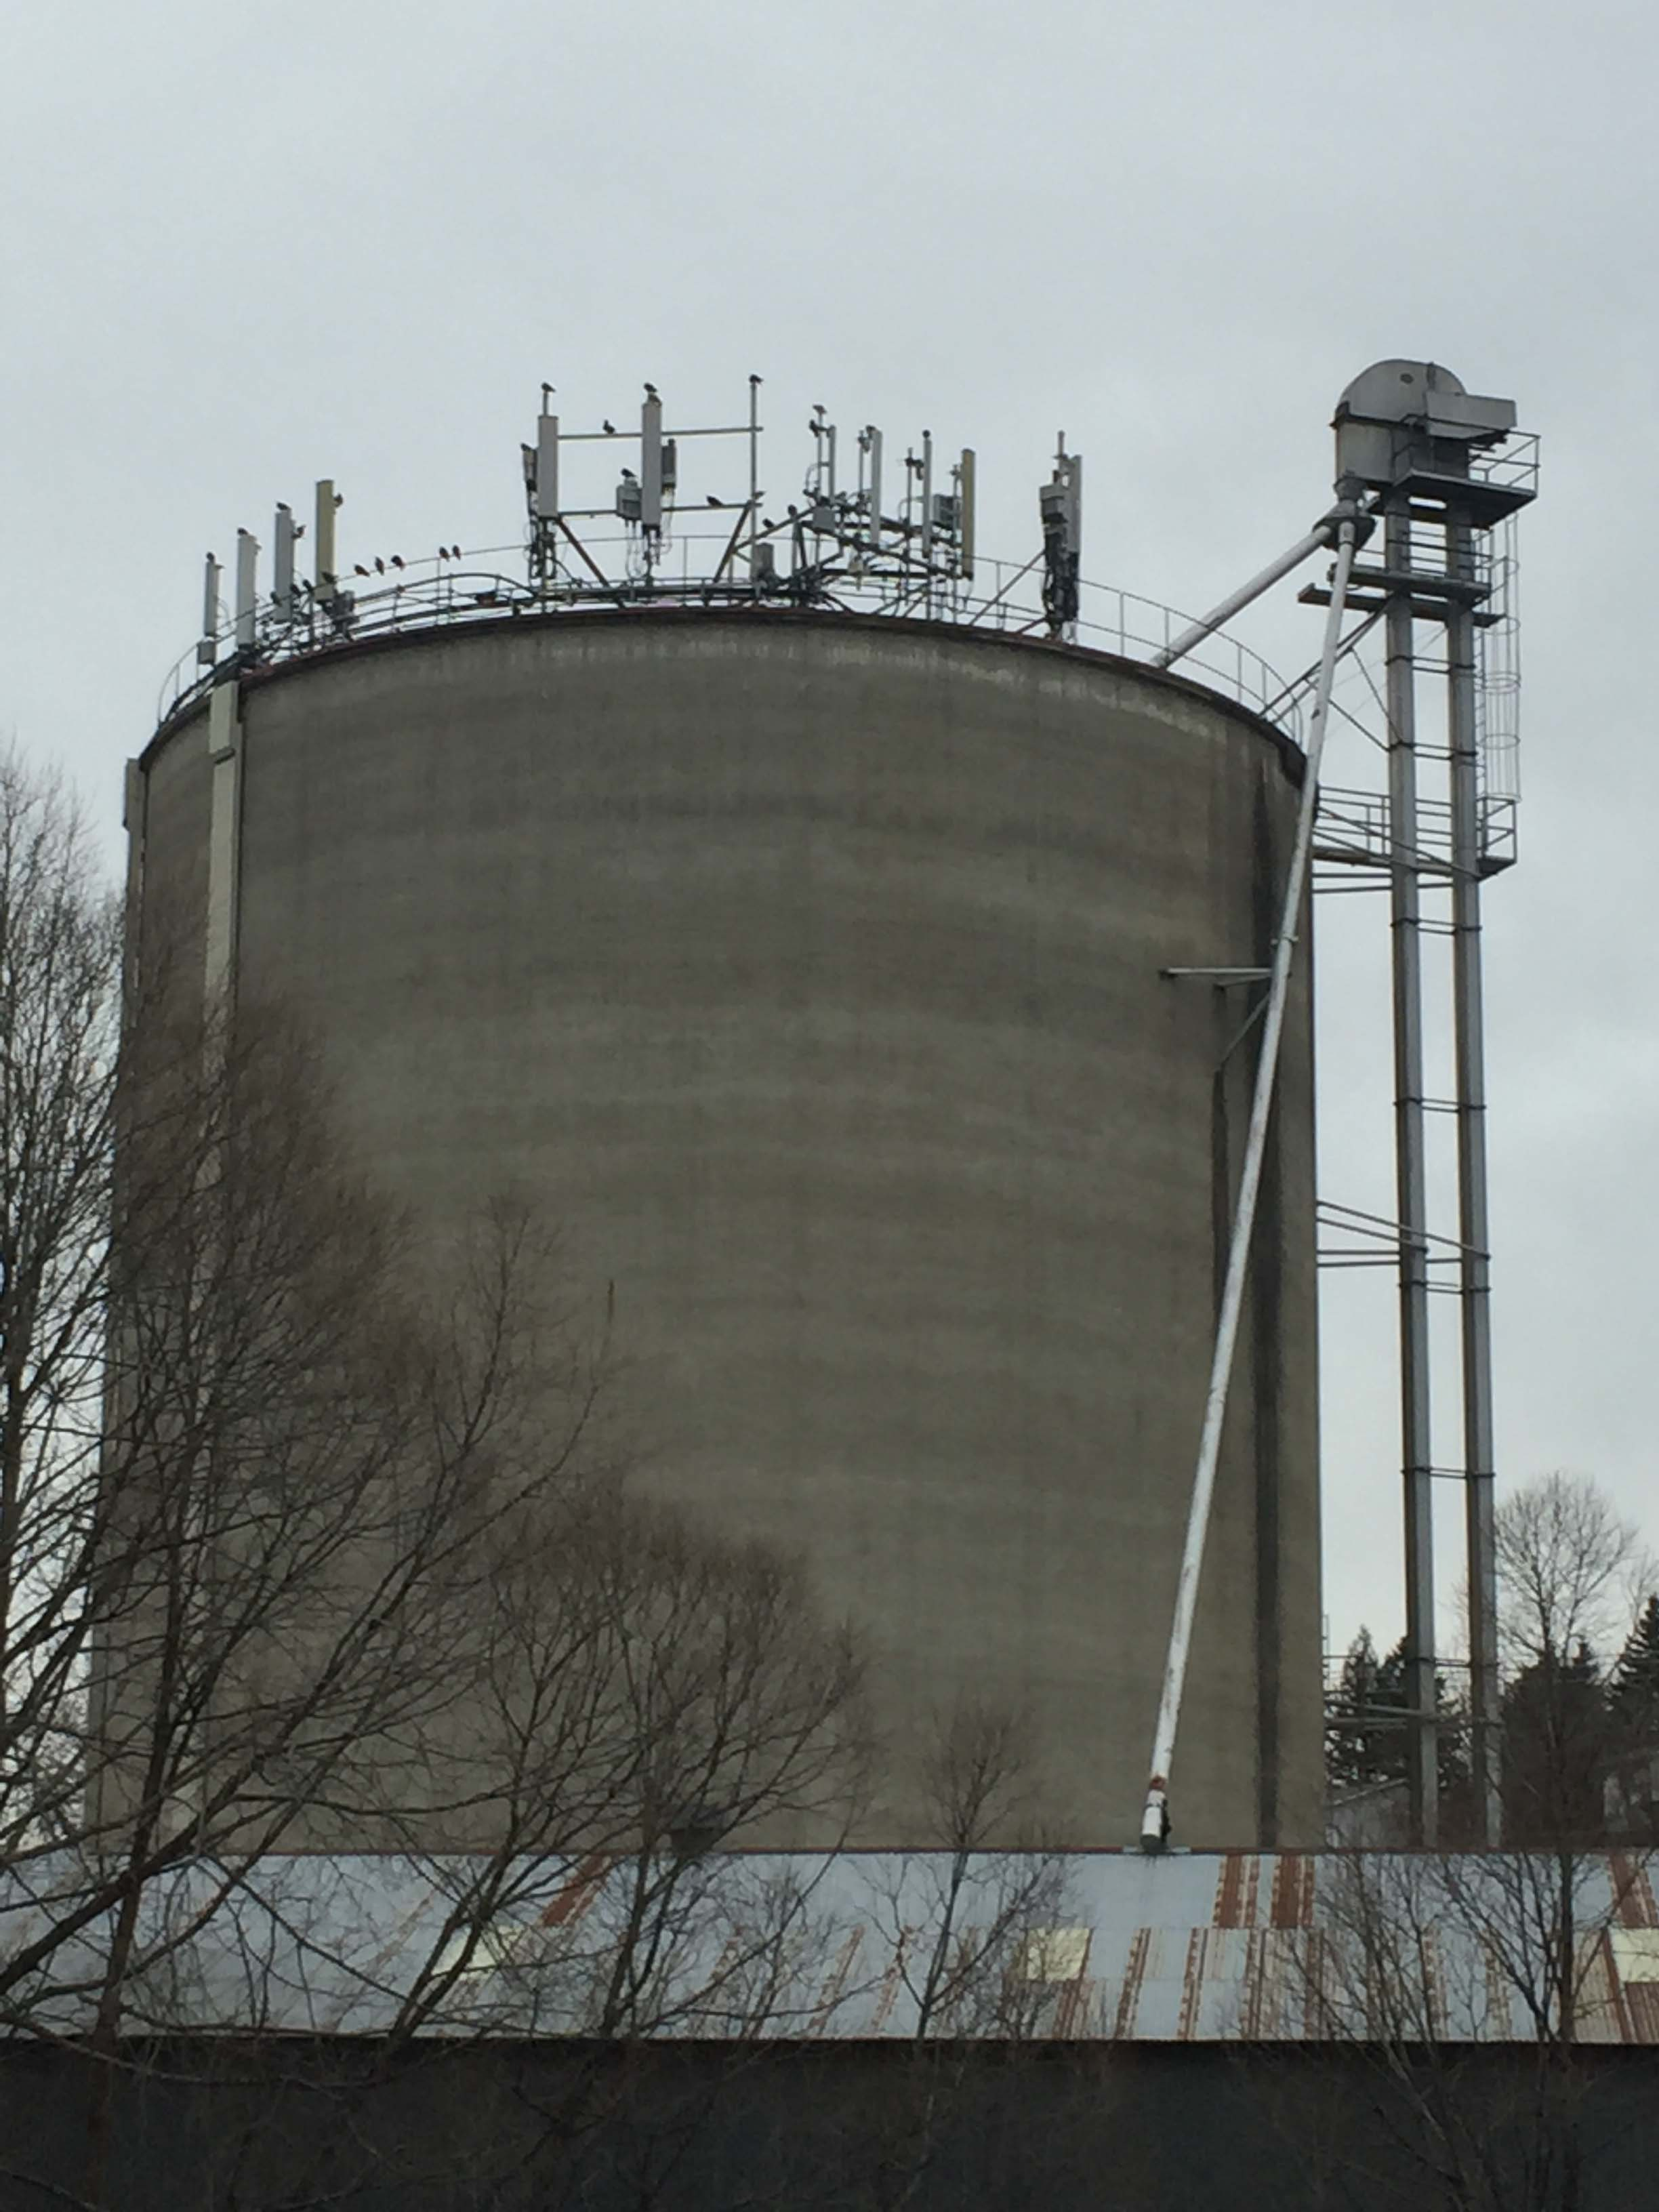 View looking up at the grain silo, taken February 2018.